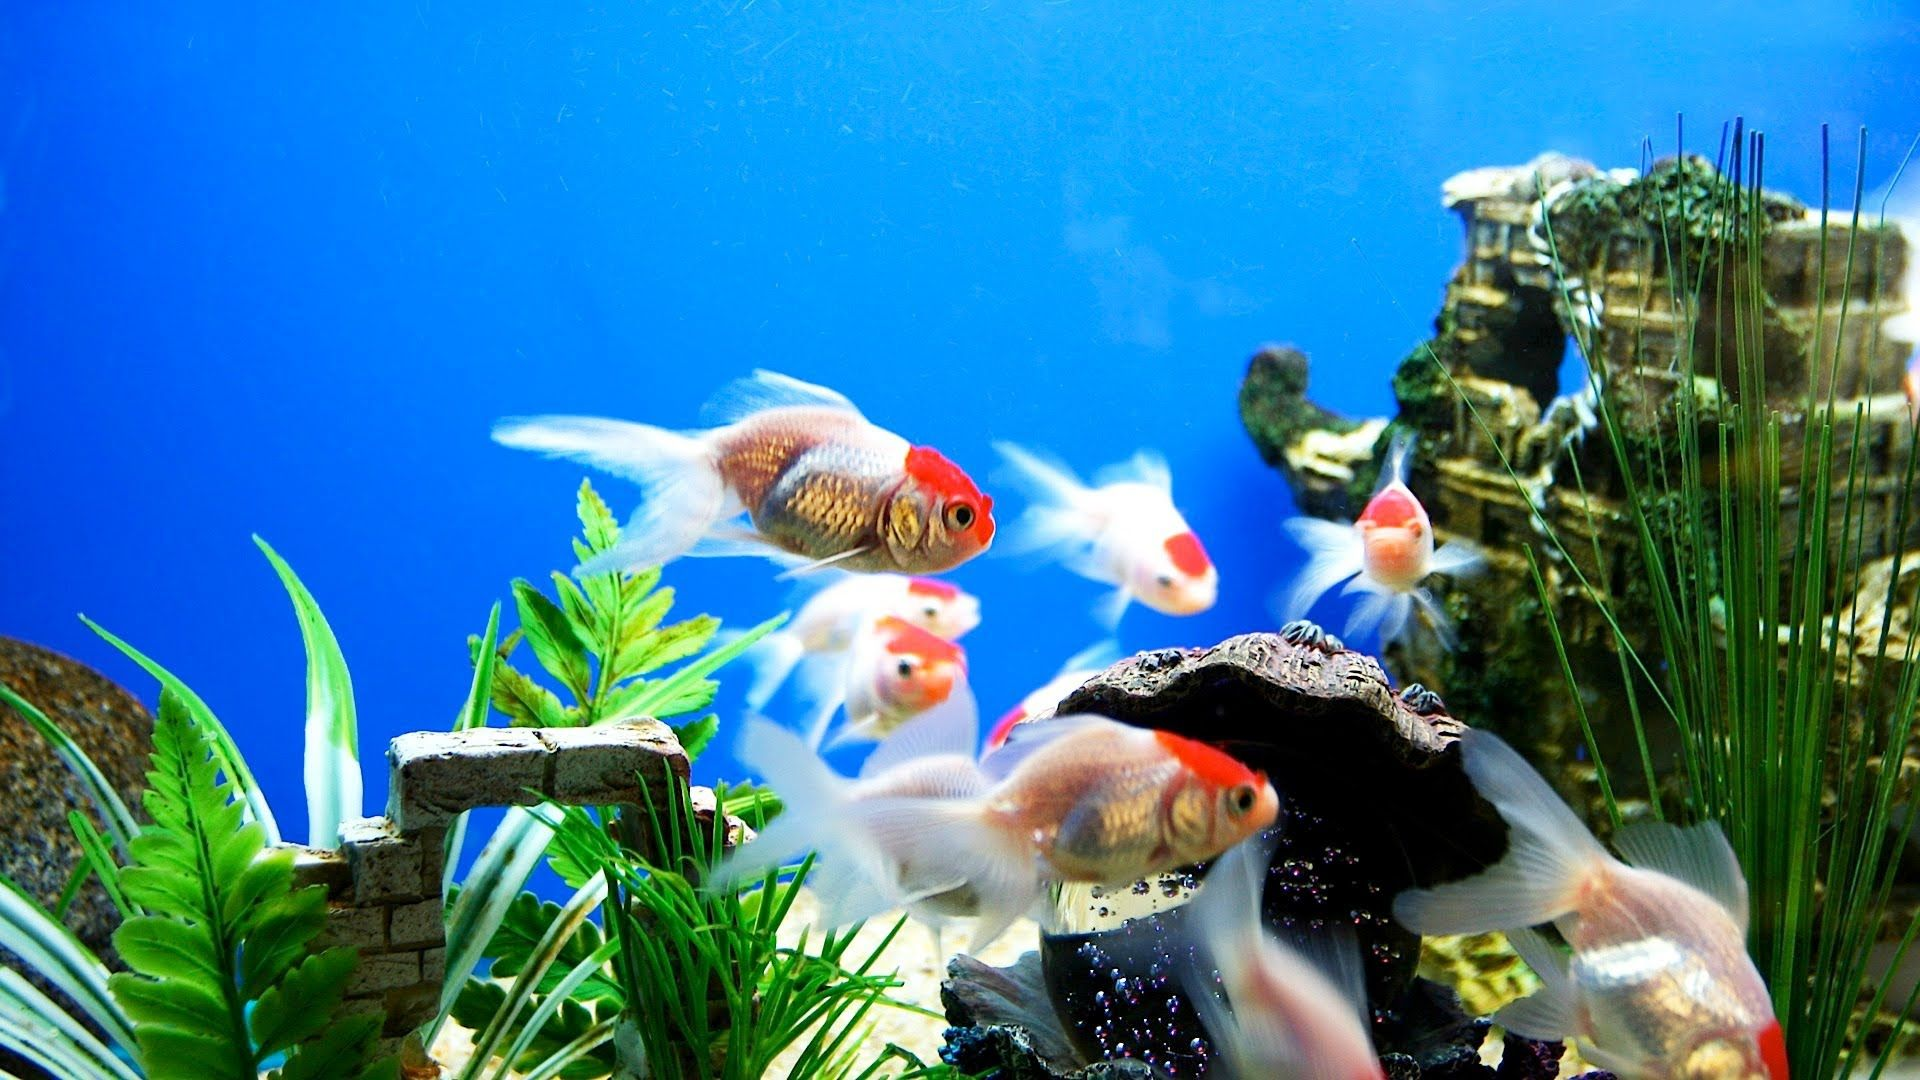 aquarium live wallpaper for pc hd wallpapers pinterest